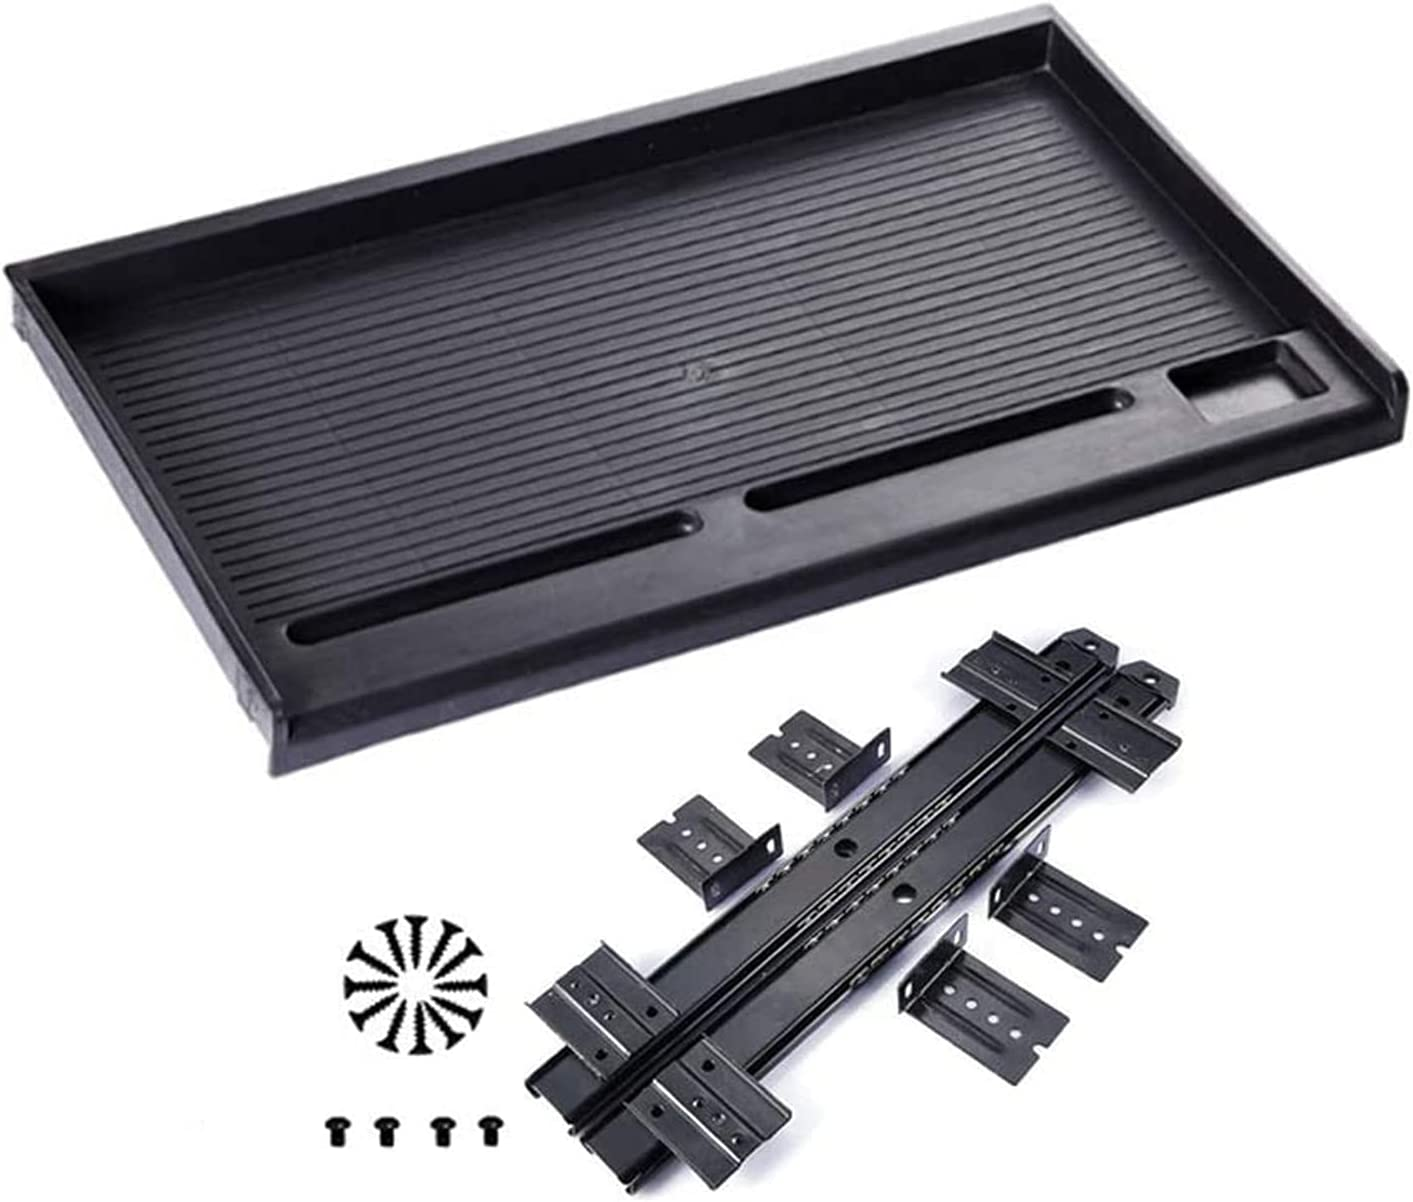 Sale special price Under Desk Keyboard Tray - Sliding Height A OFFer